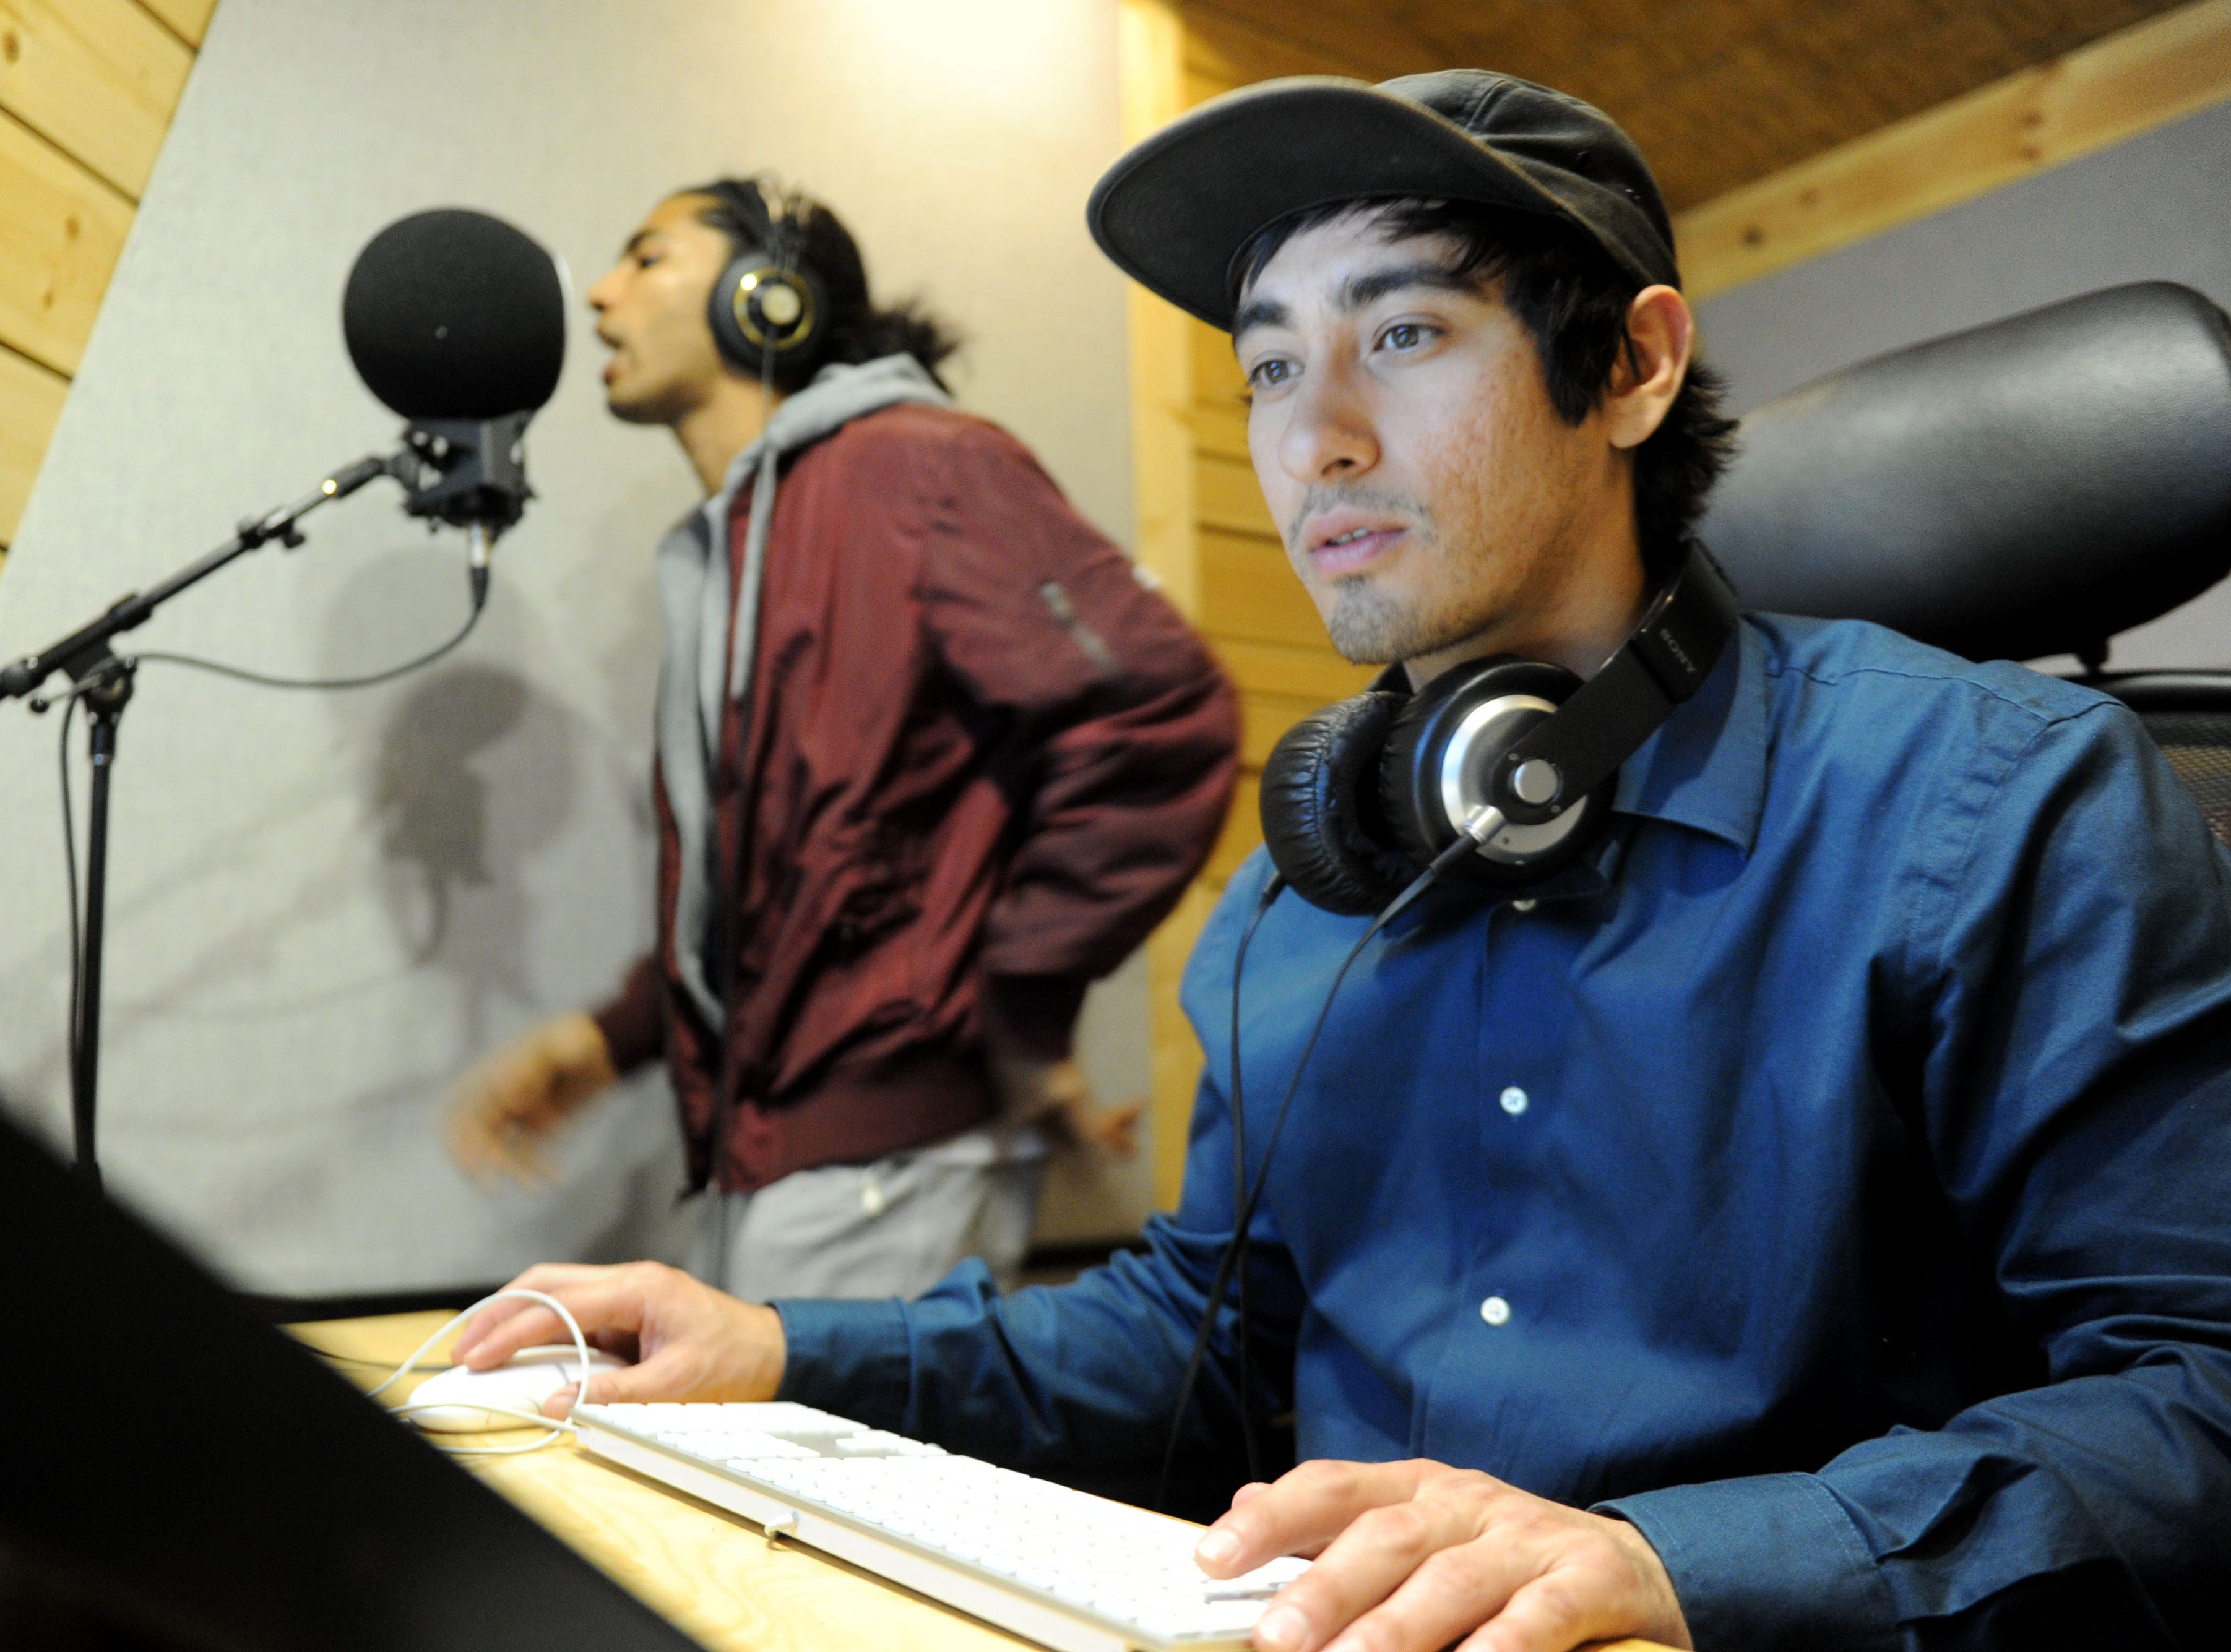 """Santa Barbara hip-hop artist Andre """"Enyukay"""" Rhodes, left, works with Aaron Alvarez, a facility manager at Rose Lane Studios in Carpinteria. Rhodes said the Rose Lane studio staff works with artists to help them develop their songwriting skills."""